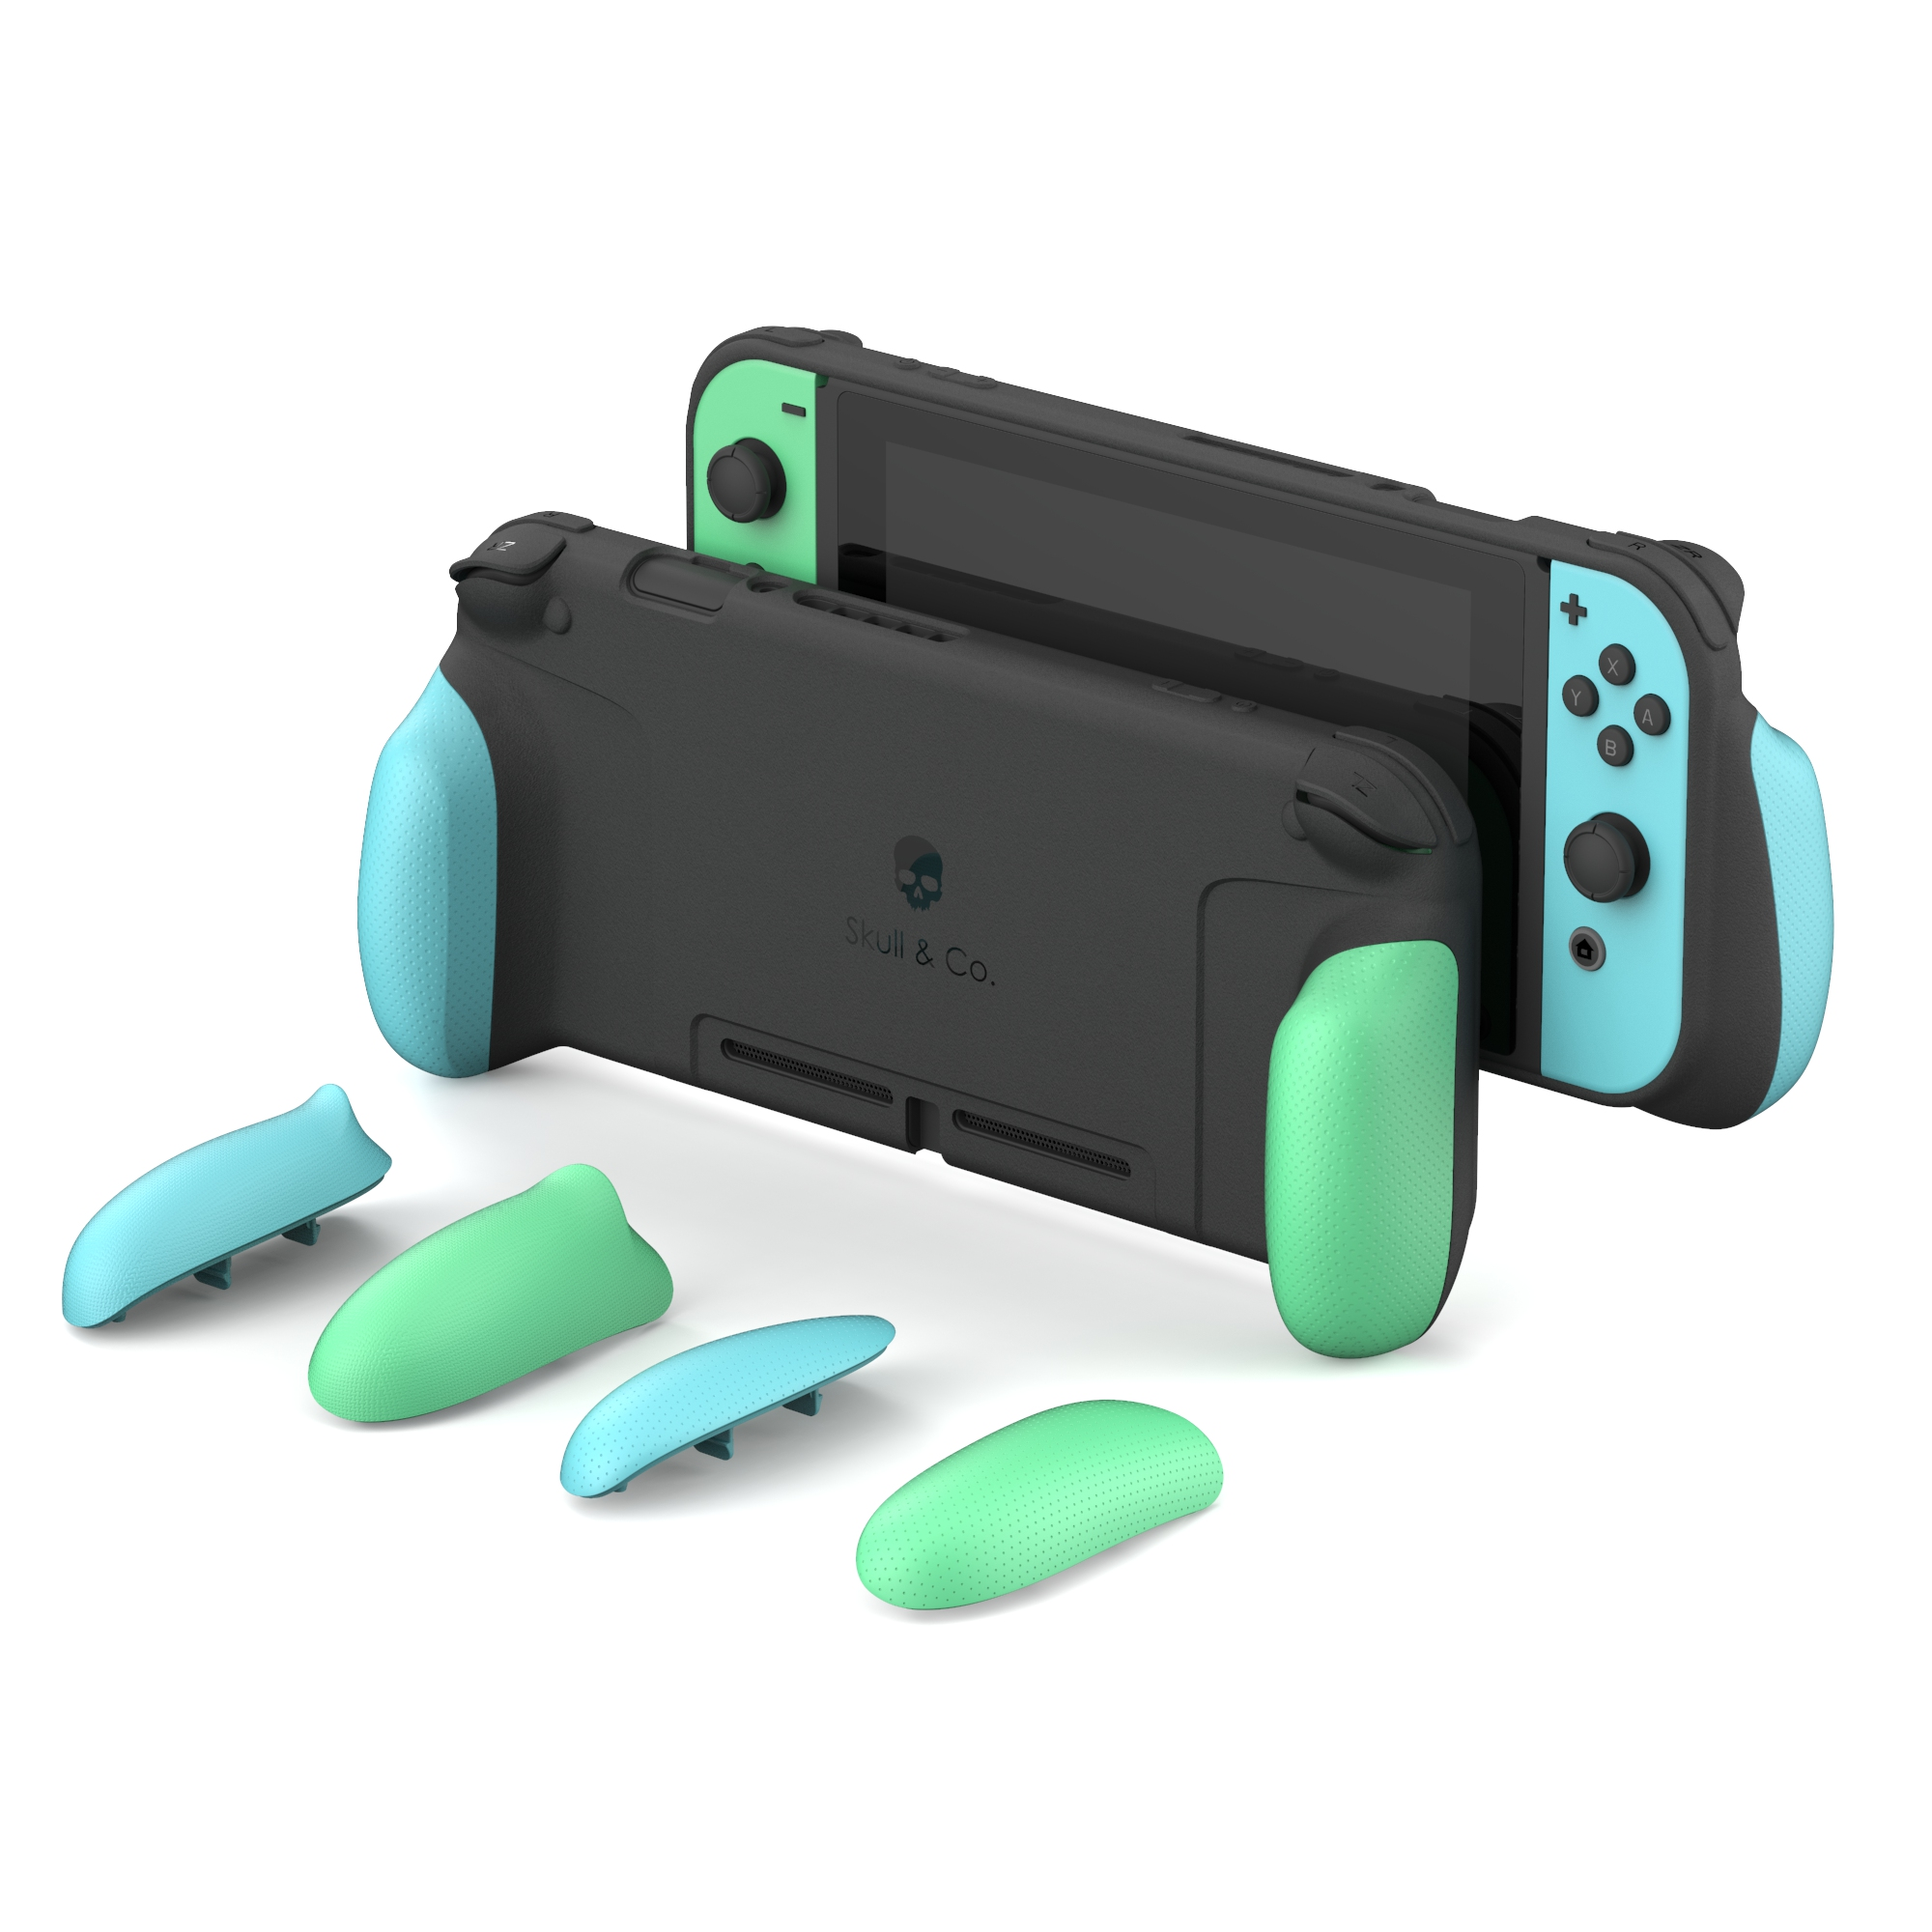 Skull & Co. Animal Crossing GripCase Protective Case With Replaceable Grips For Nintend Nintendo Switch